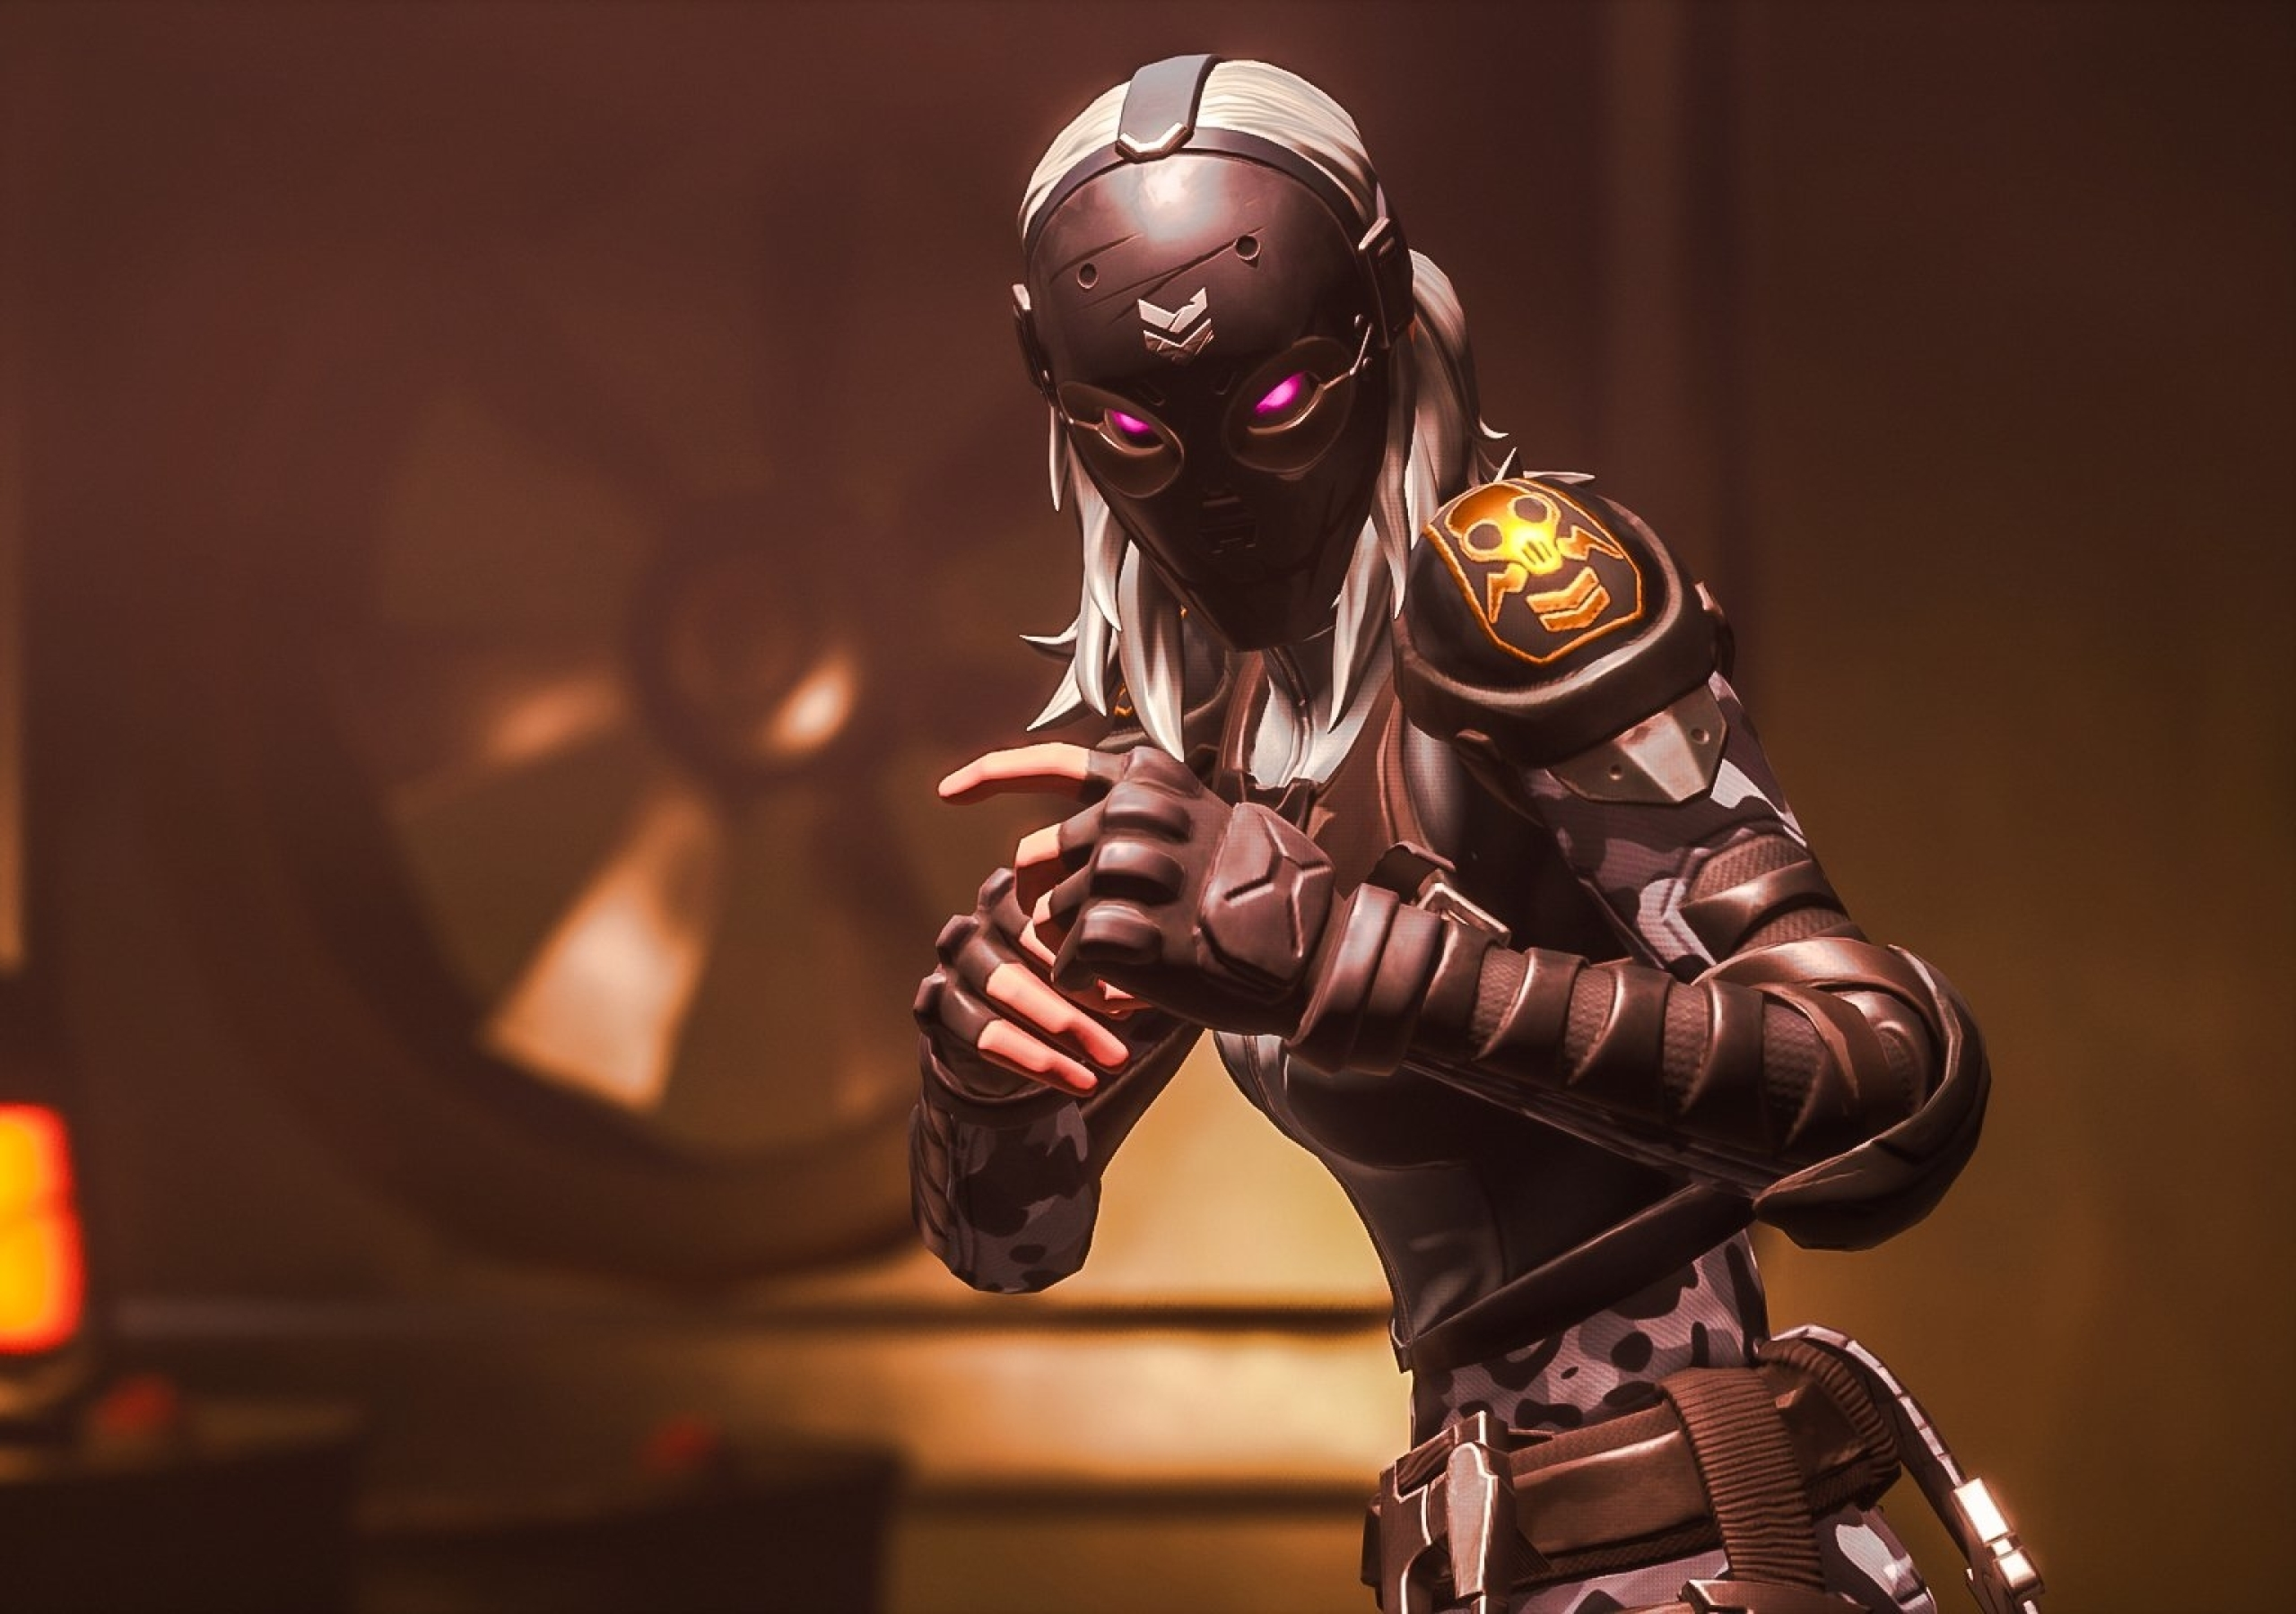 2560x1800 Zadie Fortnite 2560x1800 Resolution Wallpaper Hd Games 4k Wallpapers Images Photos And Background Wallpapers Den Zadie fortnite wallpaper for iphone pc